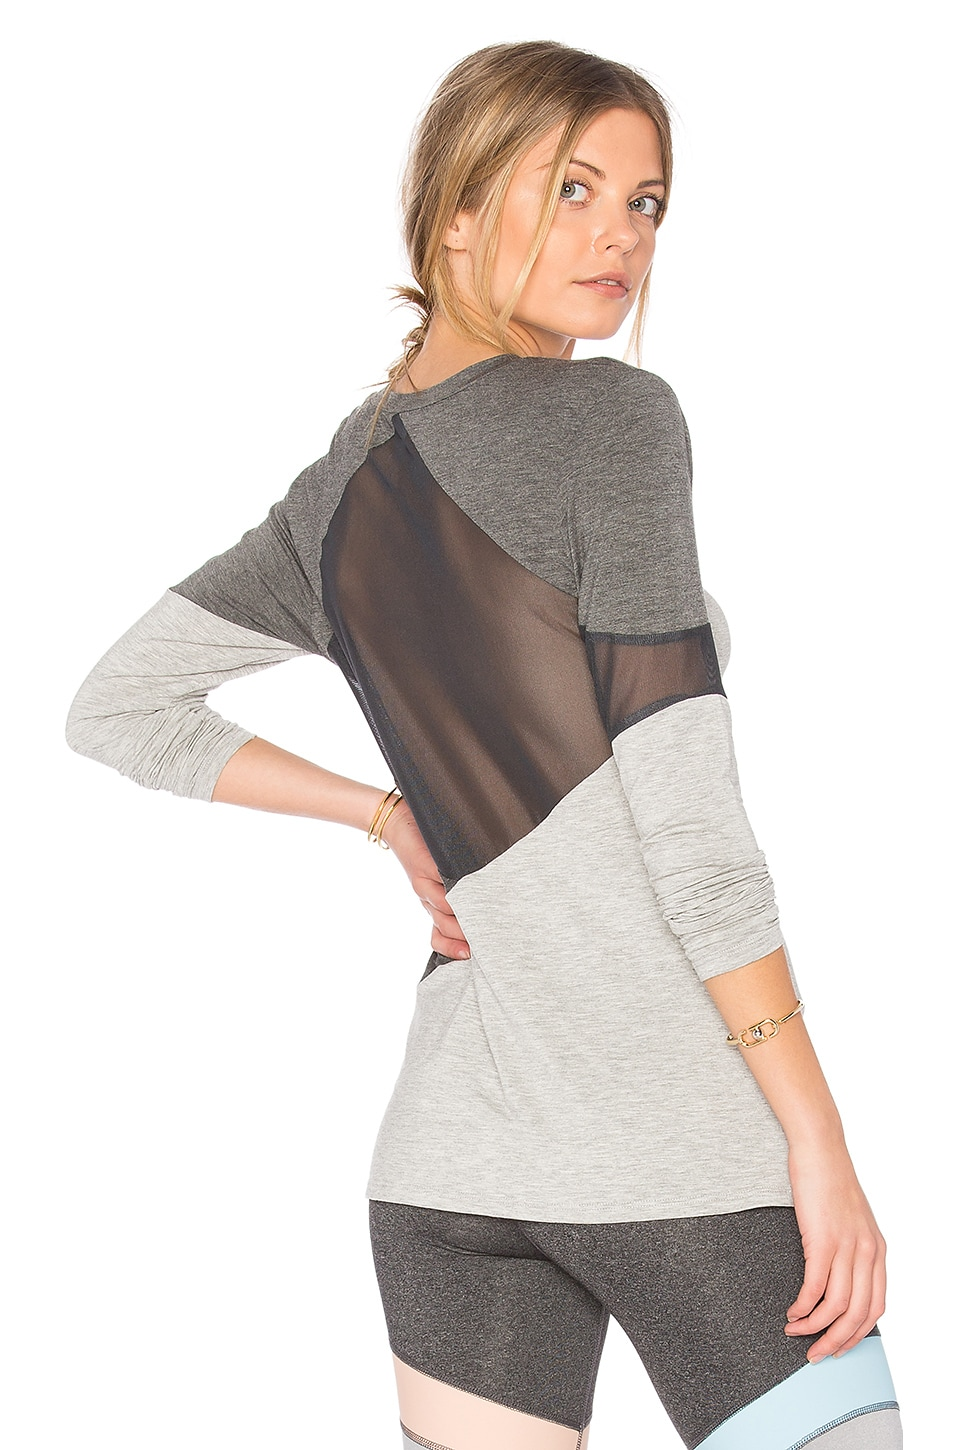 Aven Top by Body Language